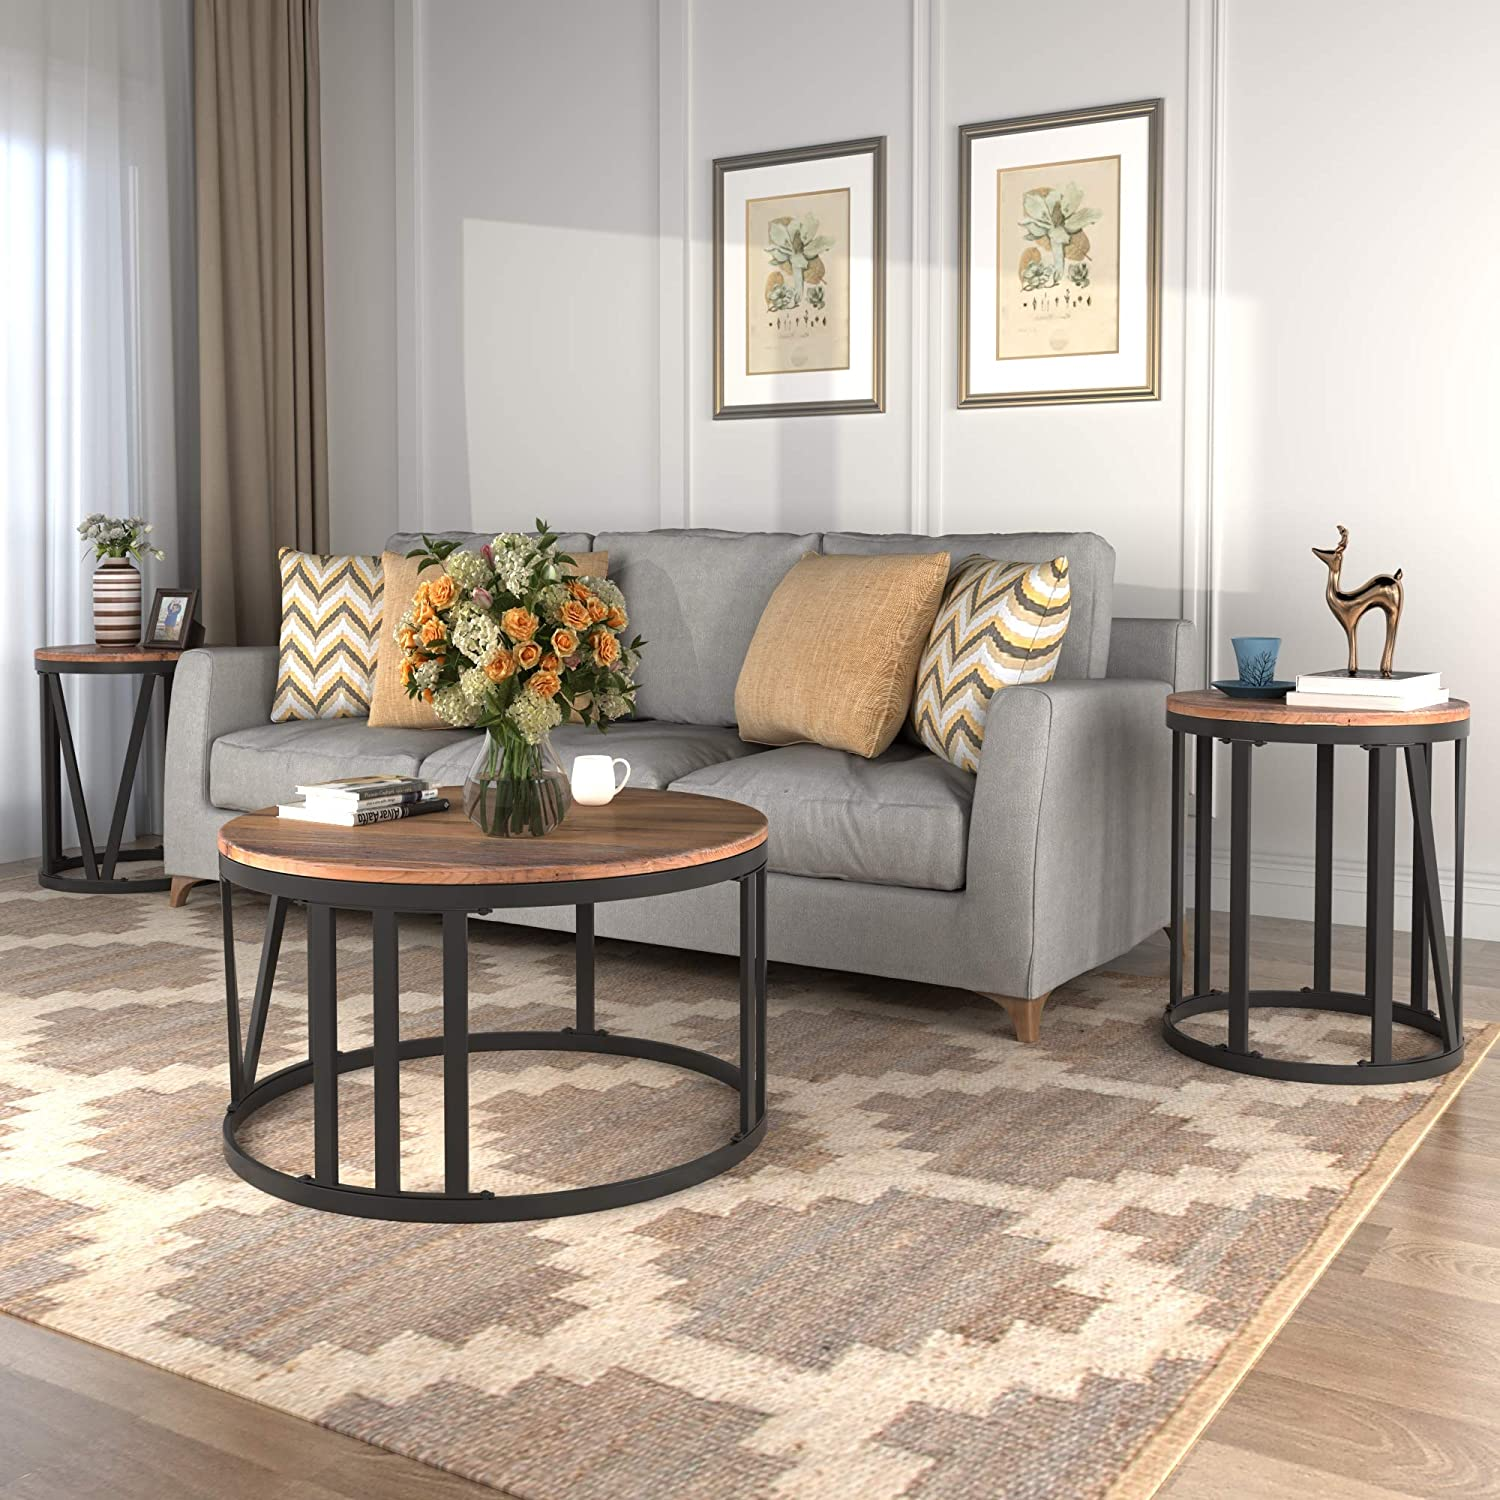 - Amazon.com: Rustic 3 Piece Coffee Table Set For Living Room 3